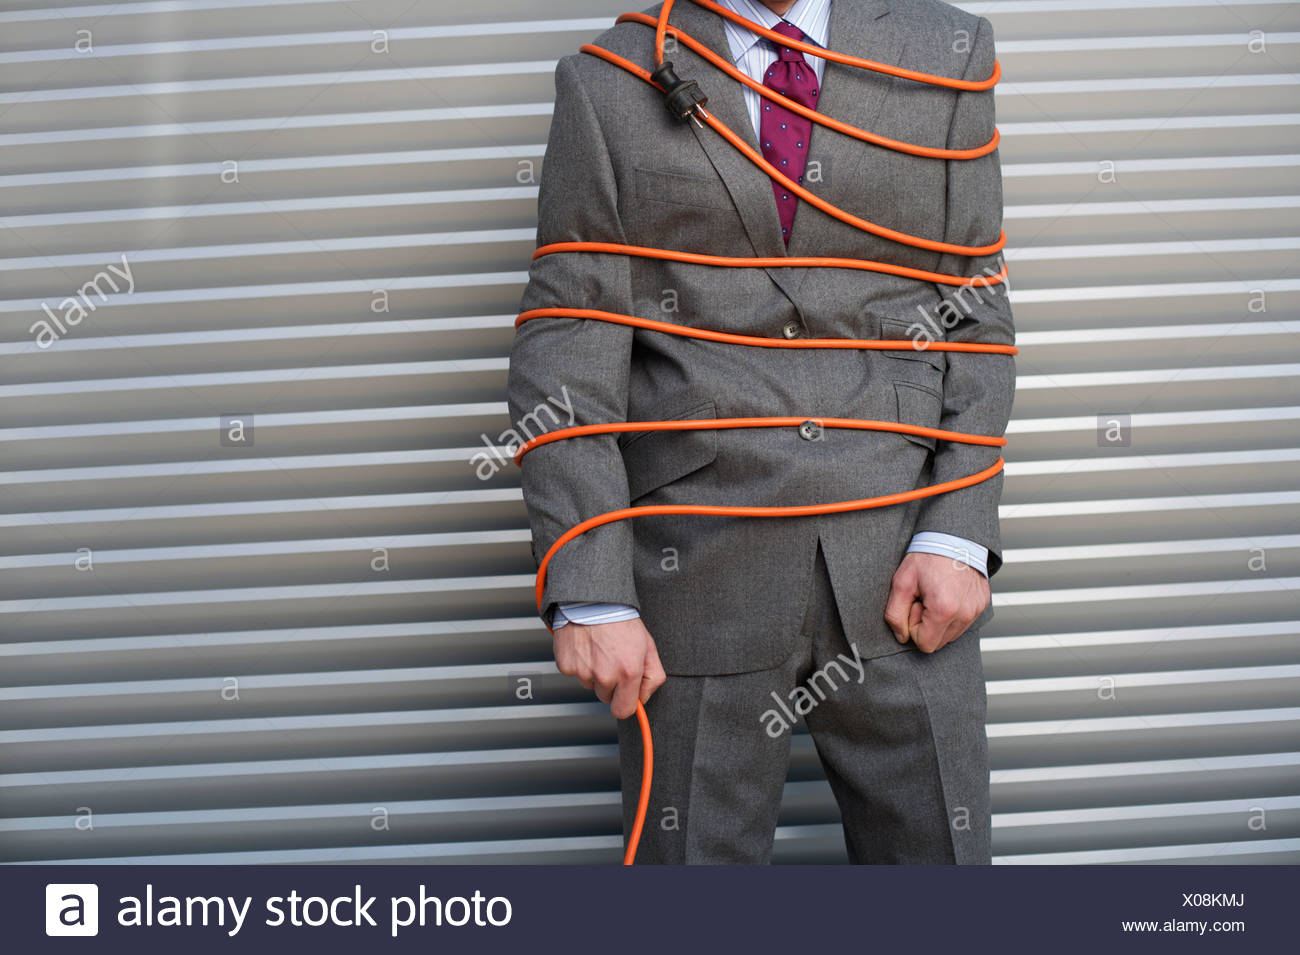 Businessman tied up with power cord - Stock Image